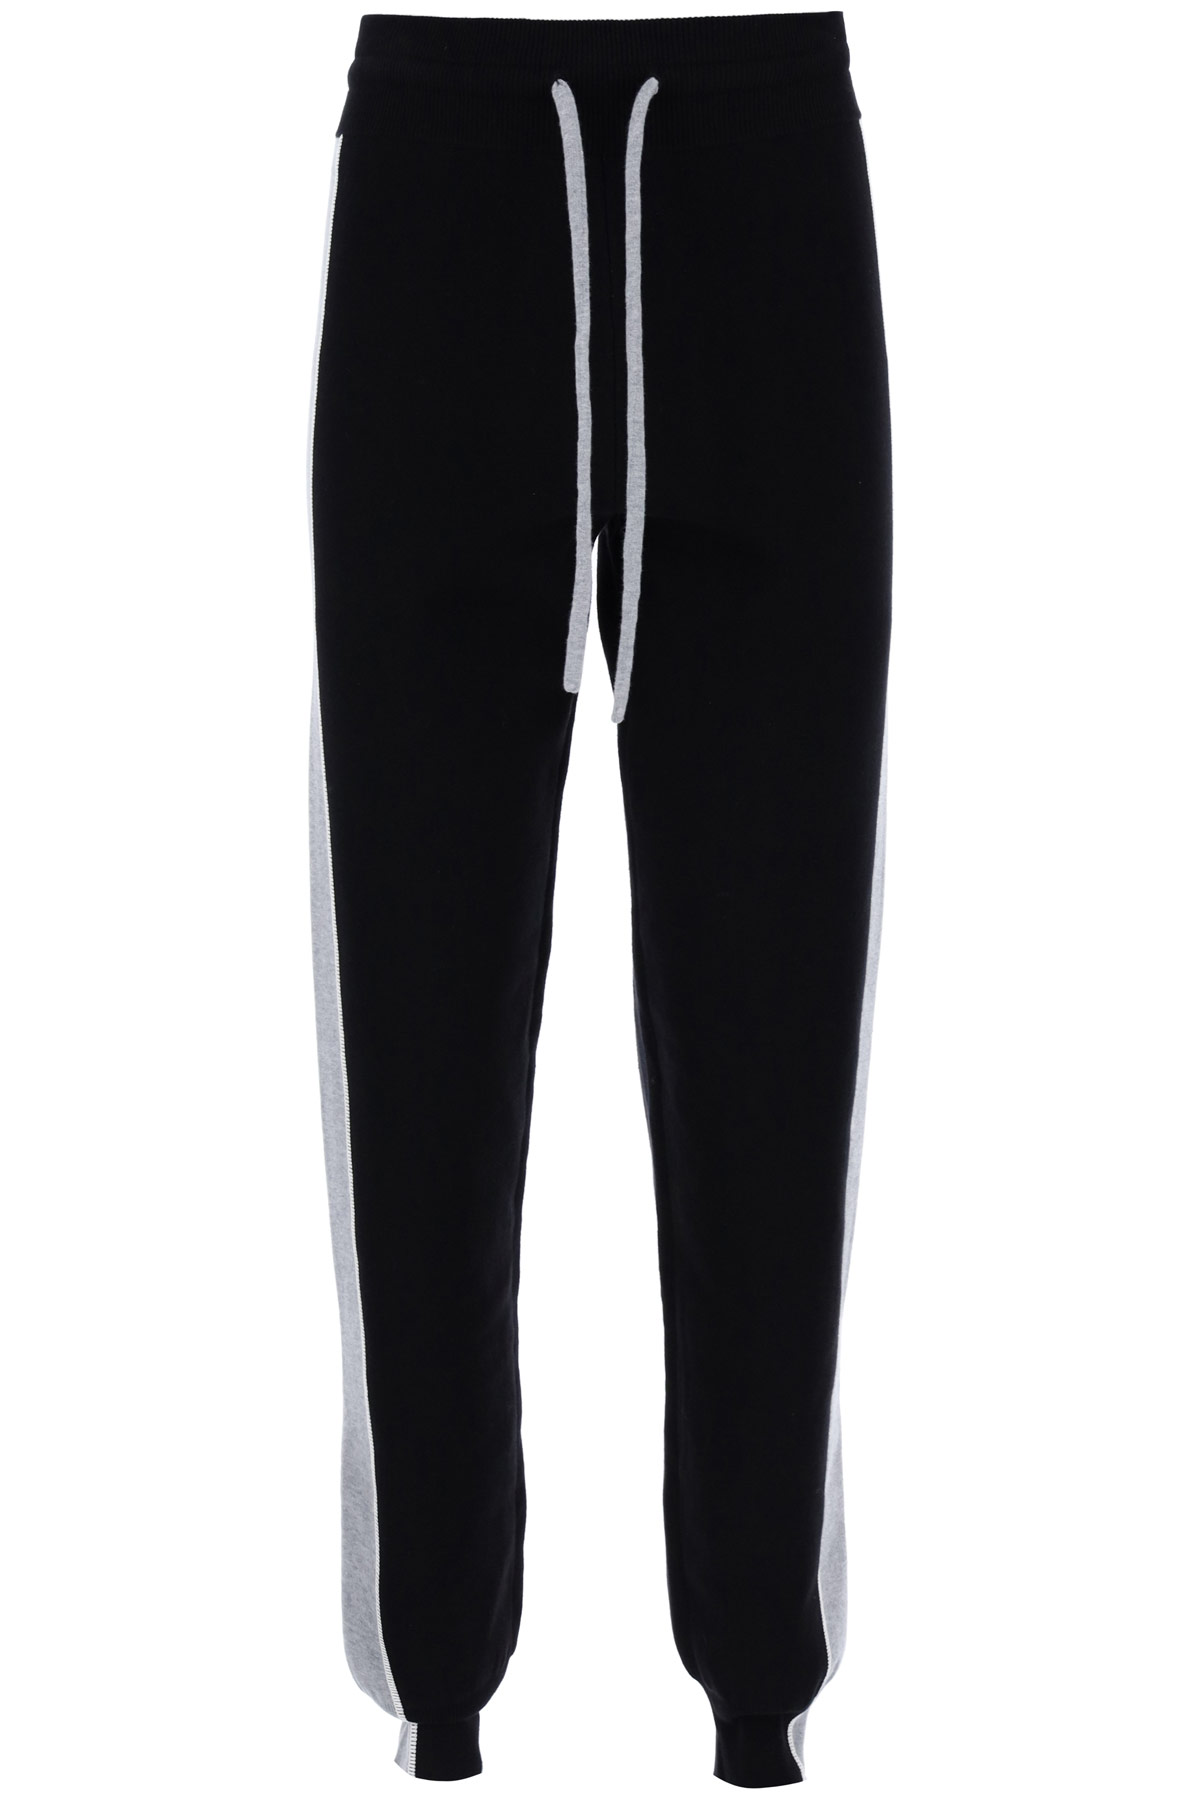 SEE BY CHLOE JOGGER PANTS M Black, Grey Cotton